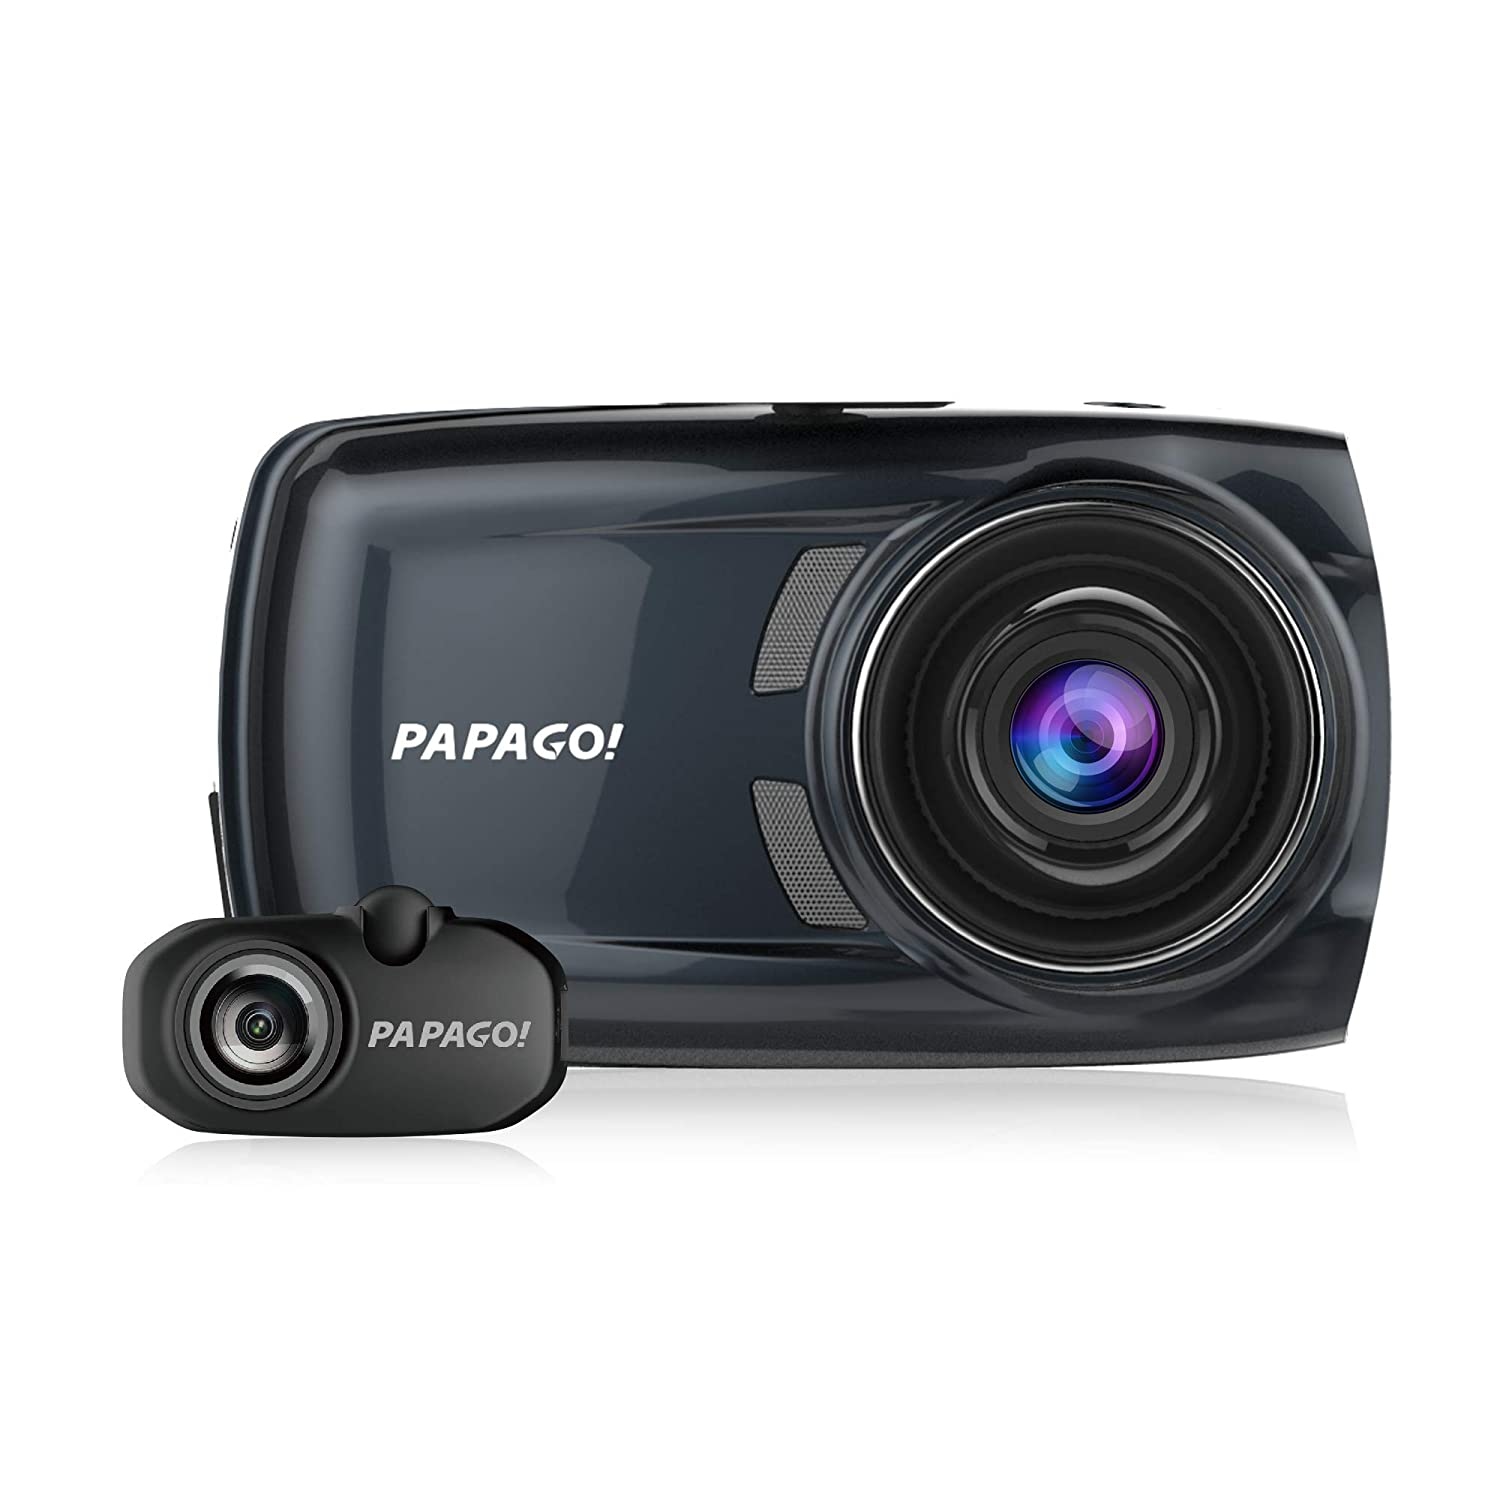 PAPAGO! GoSafe S810 Full HD 1080p Dashcam with 2.7' LCD Screen & Rear Camera